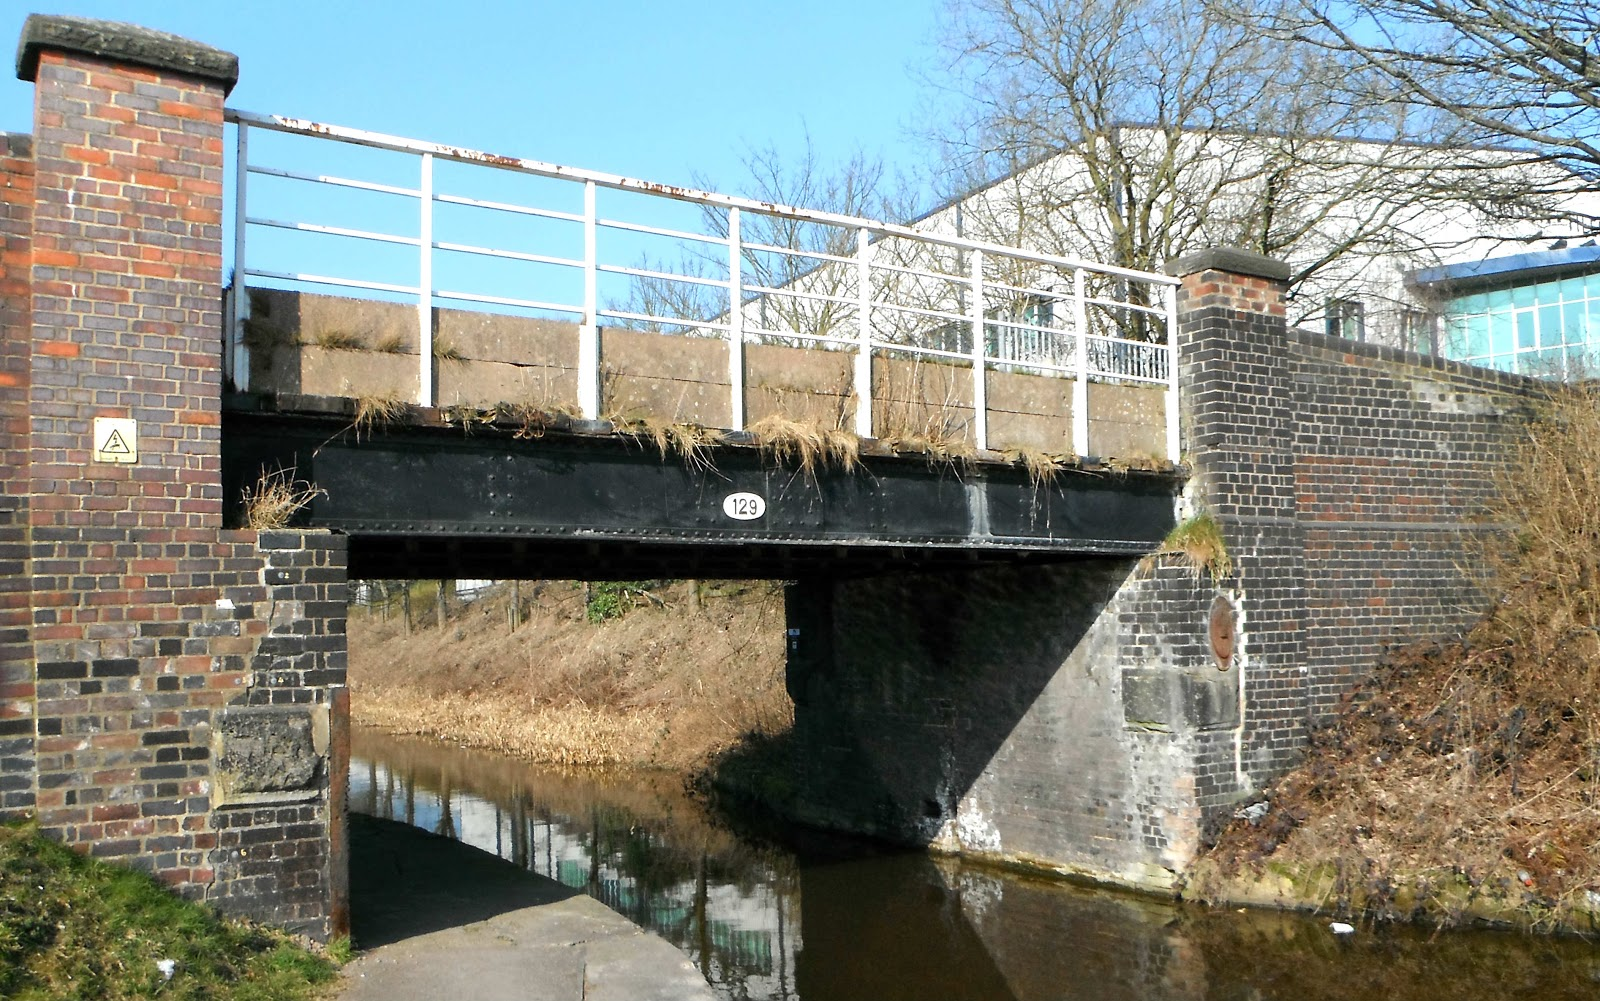 Bridge 129 (Brownhills) on the Trent & Mersey Canal